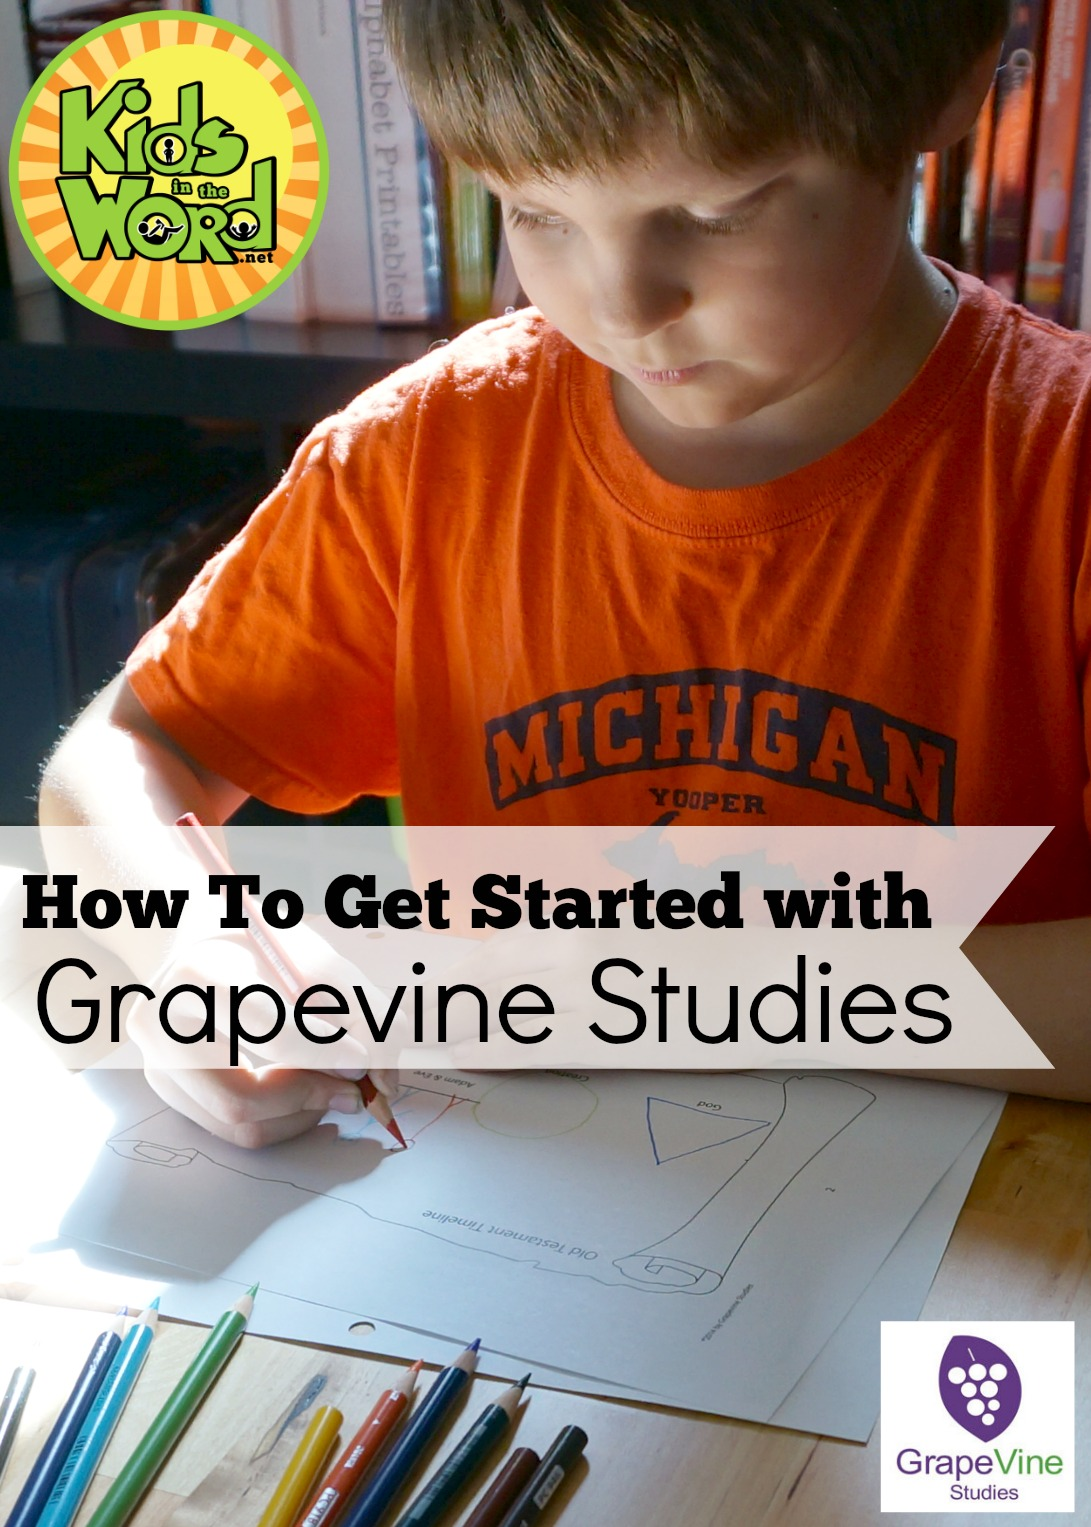 How to Get Started with Grapevine Studies: Picking studies and teaching multiple ages.